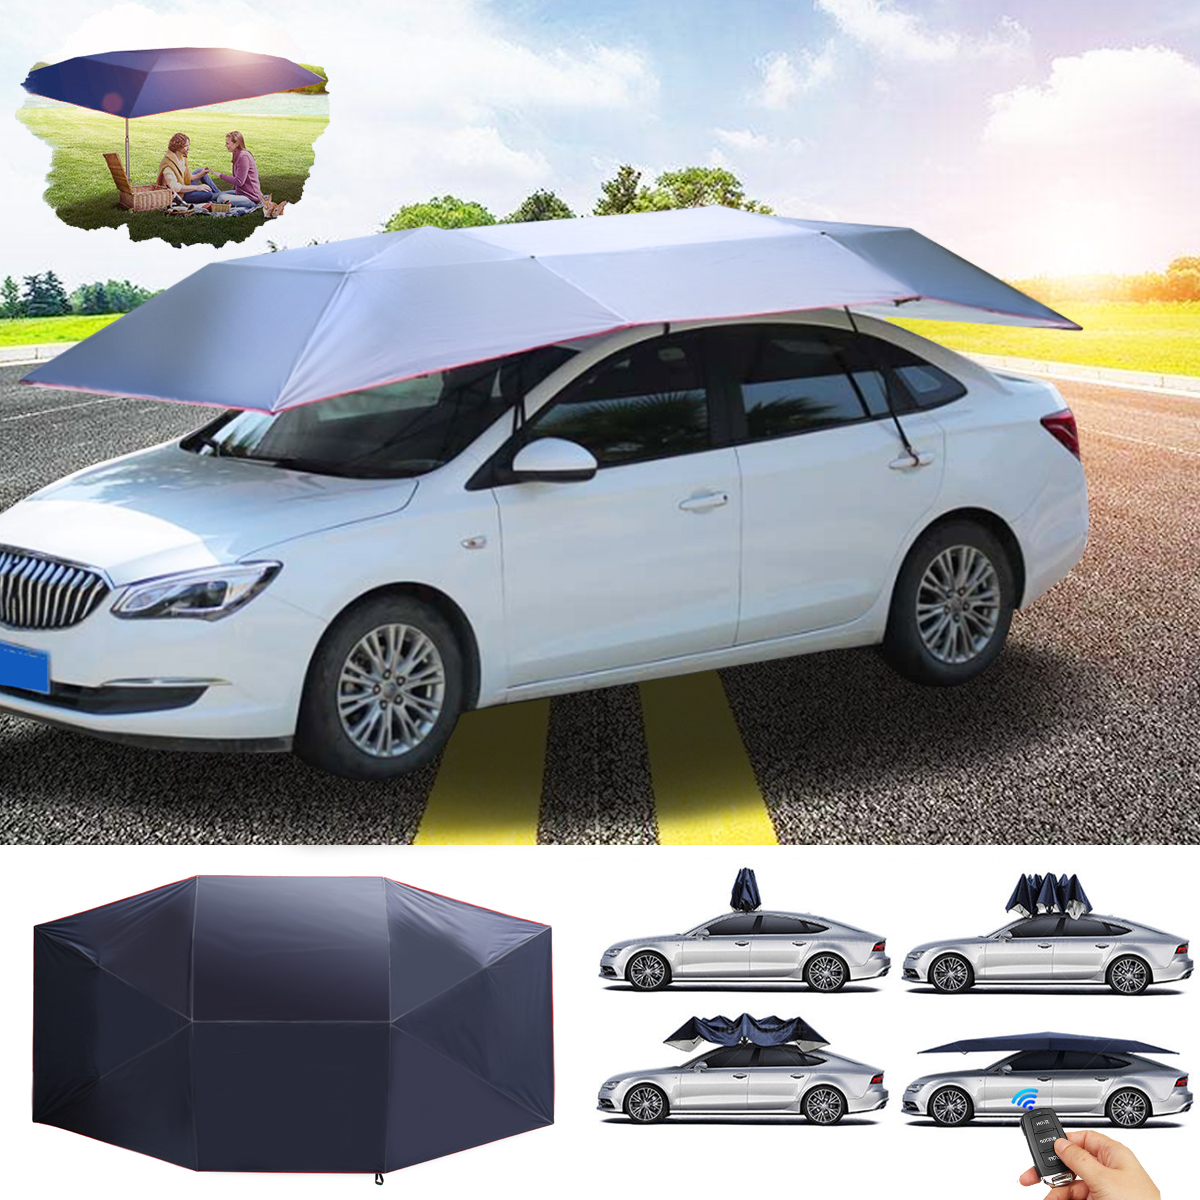 Portable umbrella car roof cover heavy duty tool chest